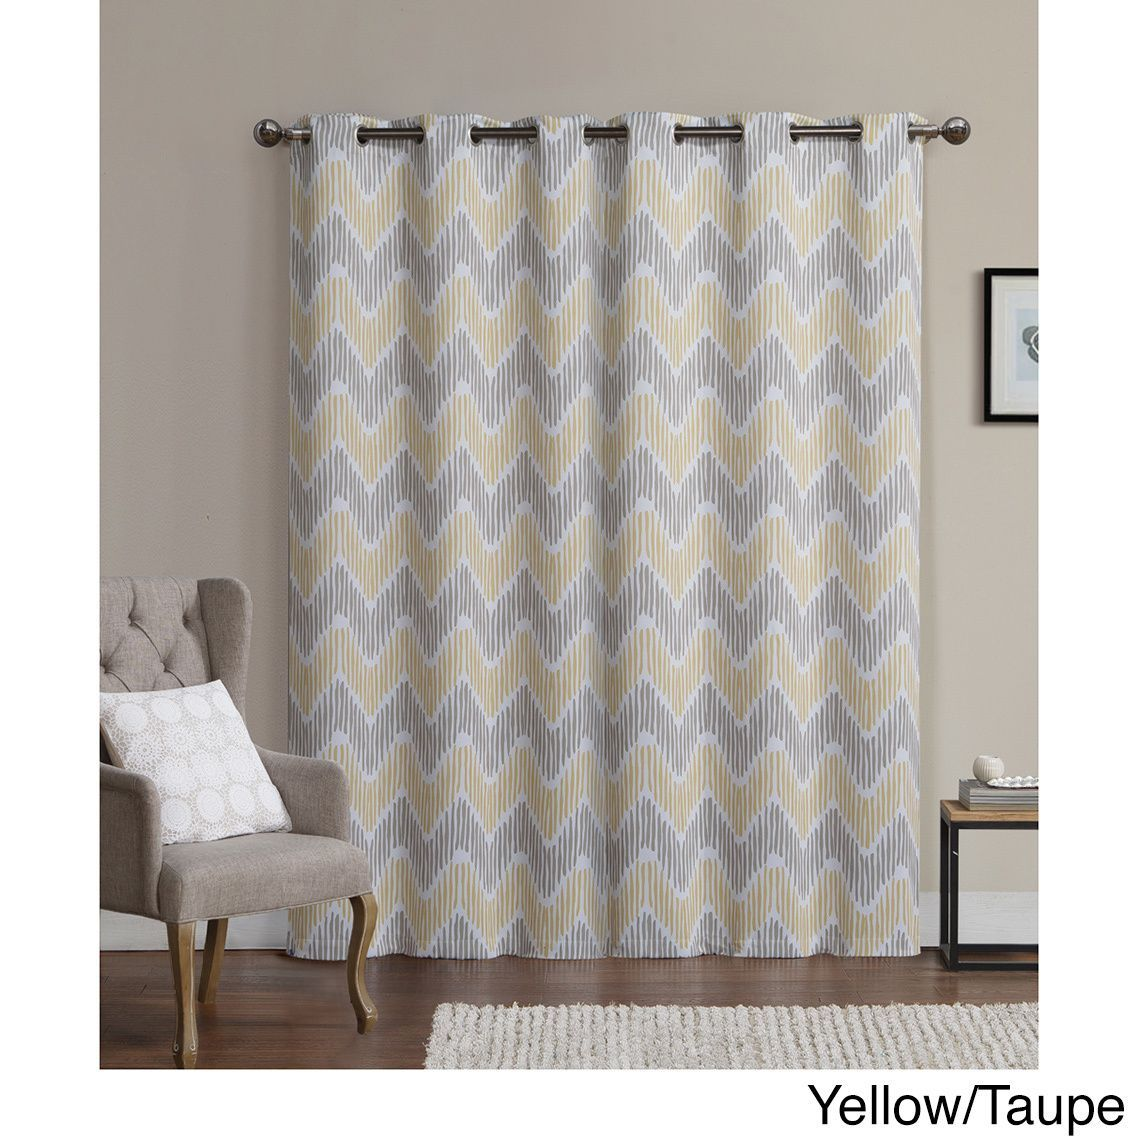 Vcny Marlie Printed 96 Inch Blackout Grommet Curtain Panel Pair